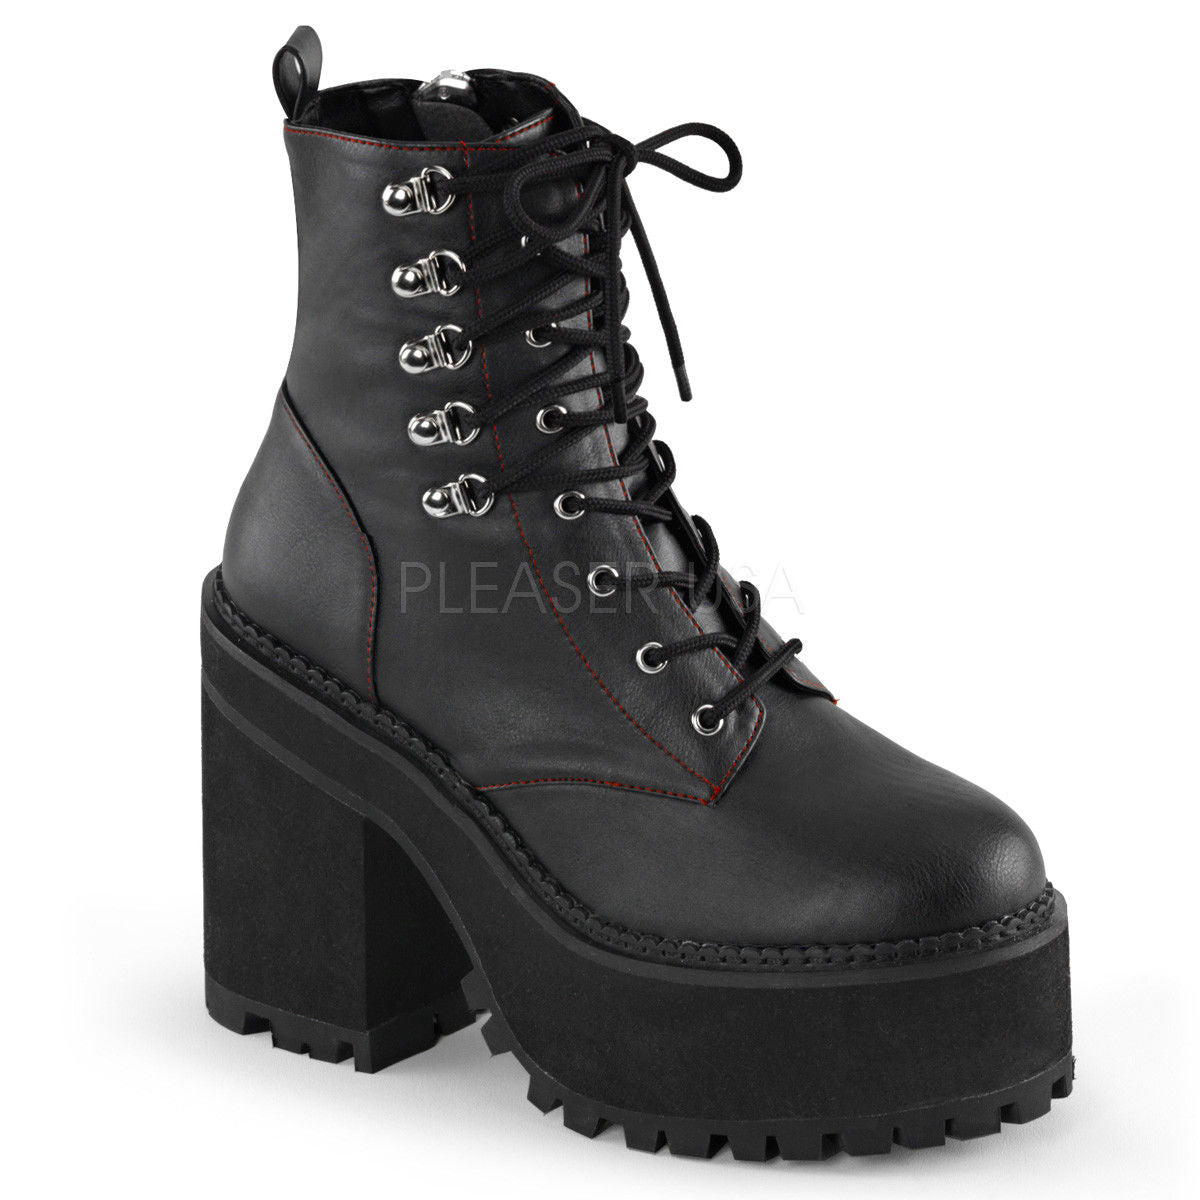 98791ad7c30f DEMONIA Assault-100 Women s Black Goth Studded Buckles Combat Platforms  Boots - A Shoe Addiction